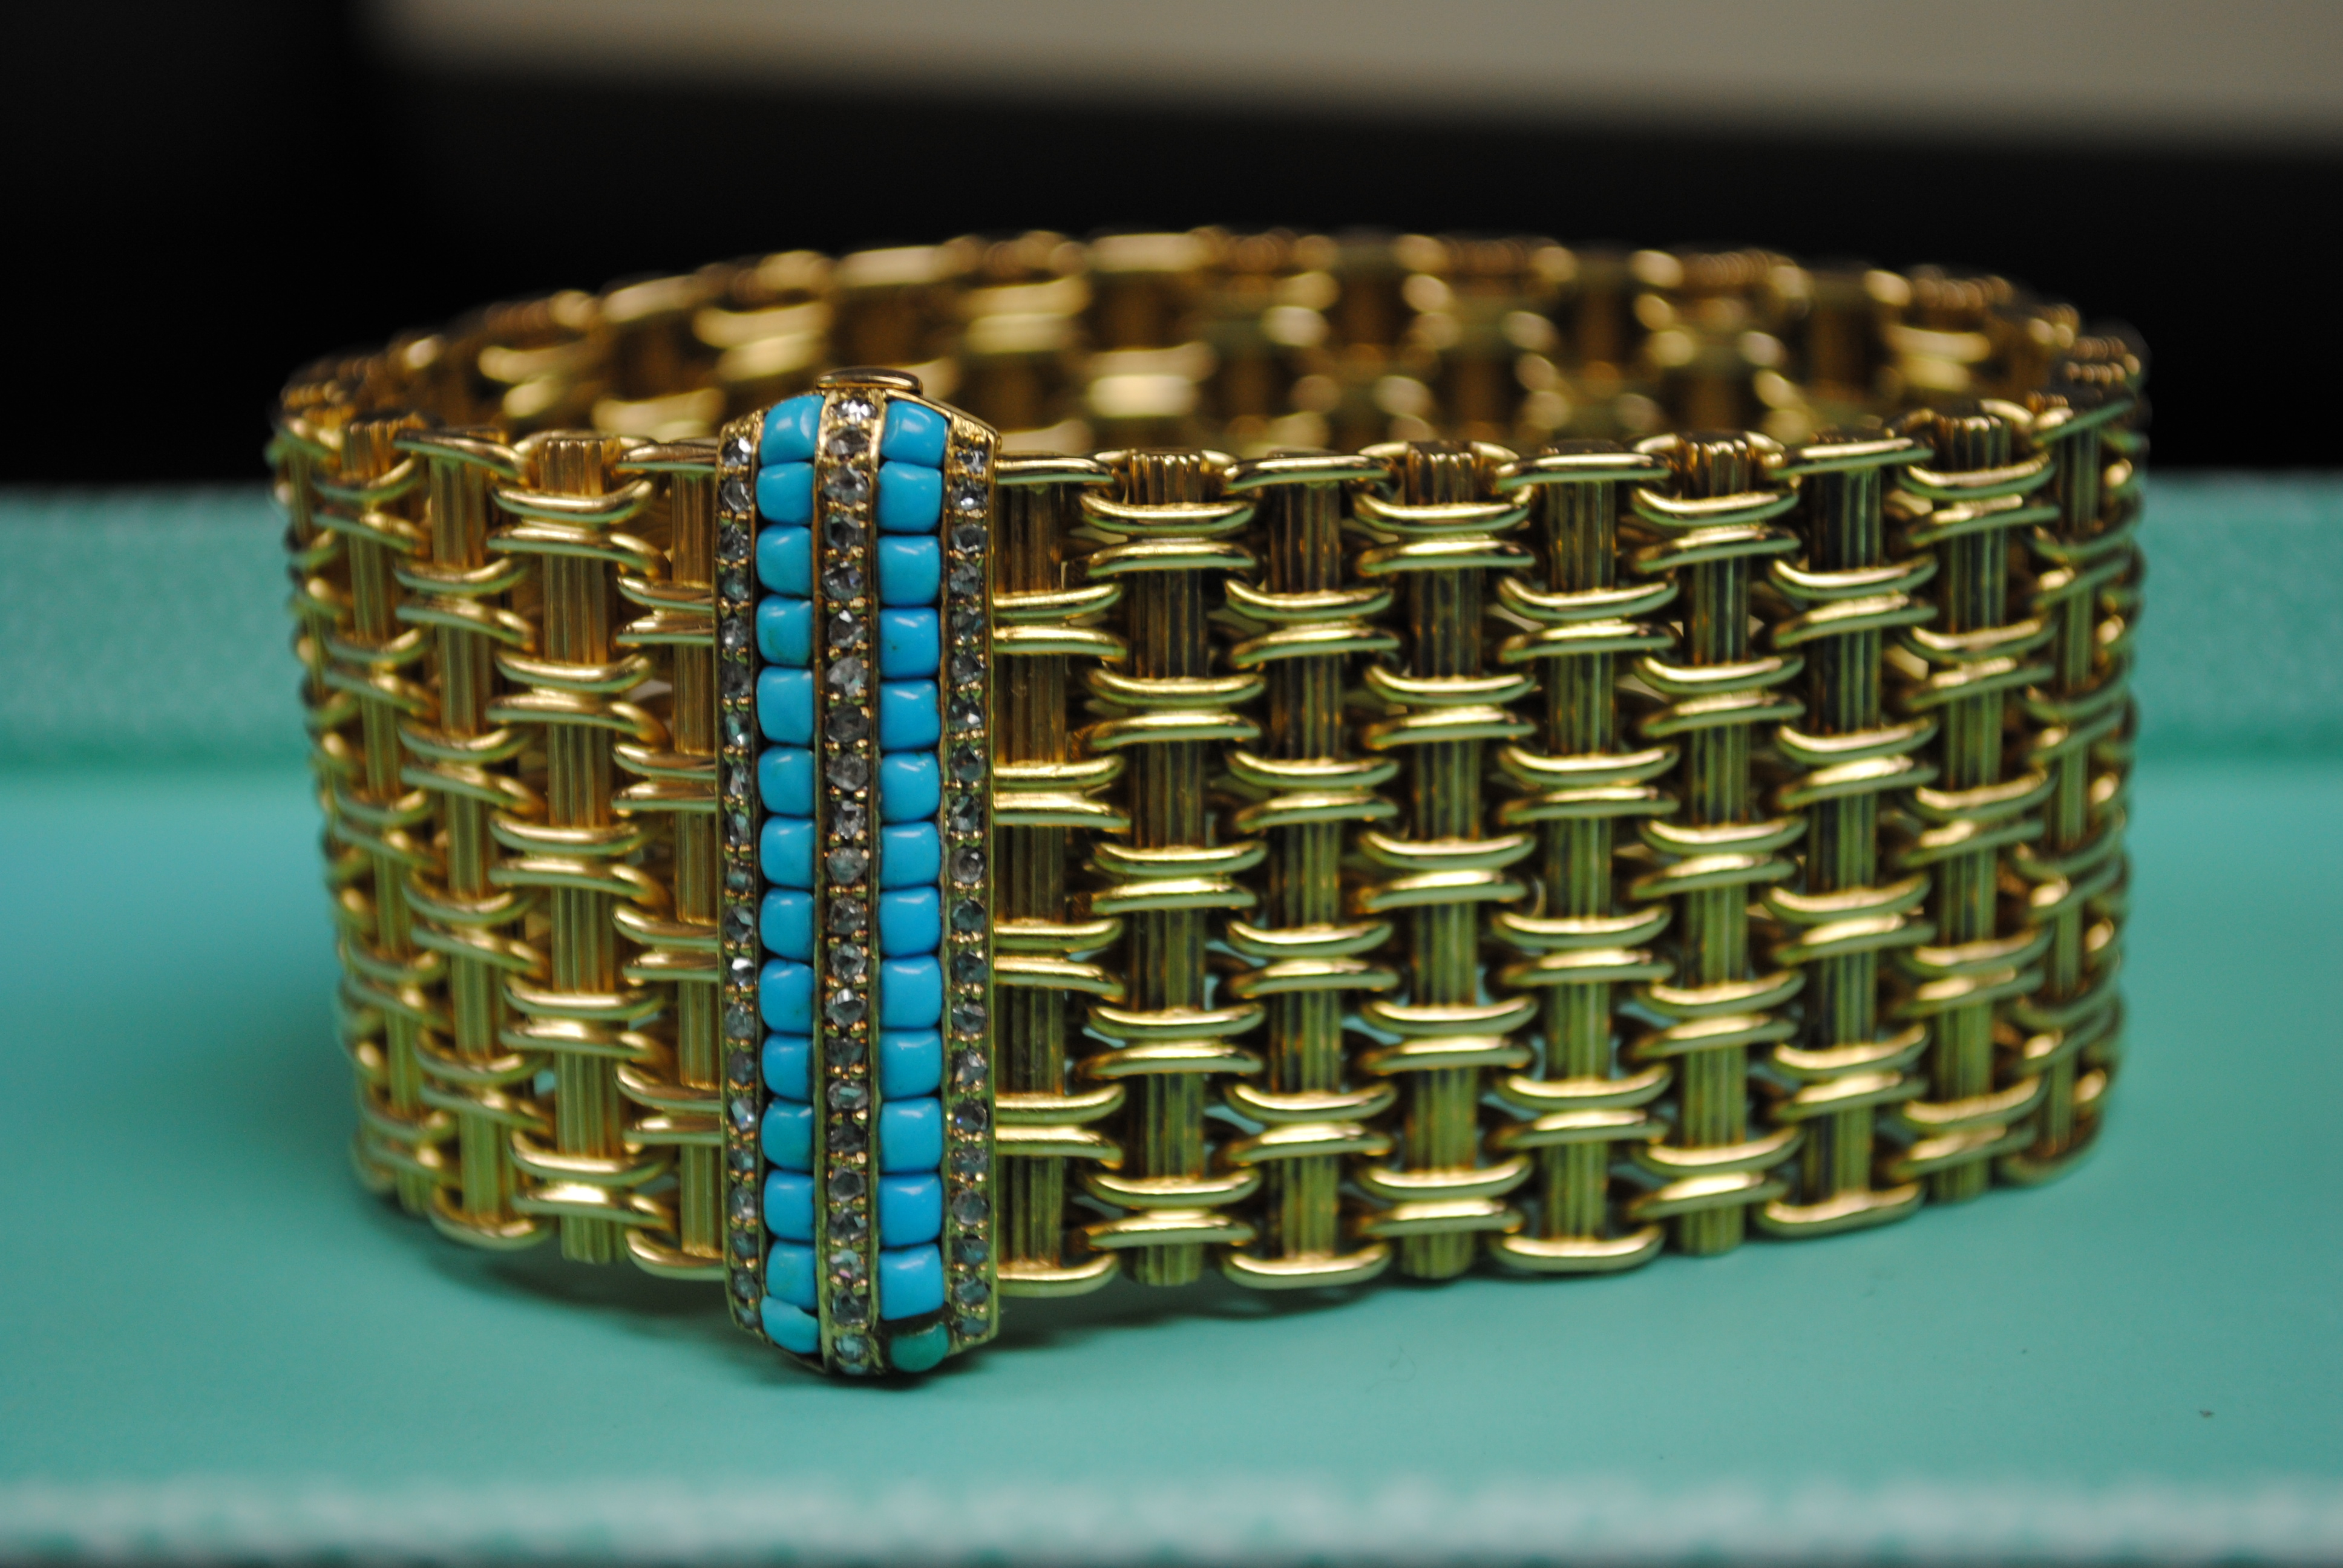 This 18kt estate bracelet may sink you to the bottom of the ocean, but who could resist turquoise for a beach cocktail party?